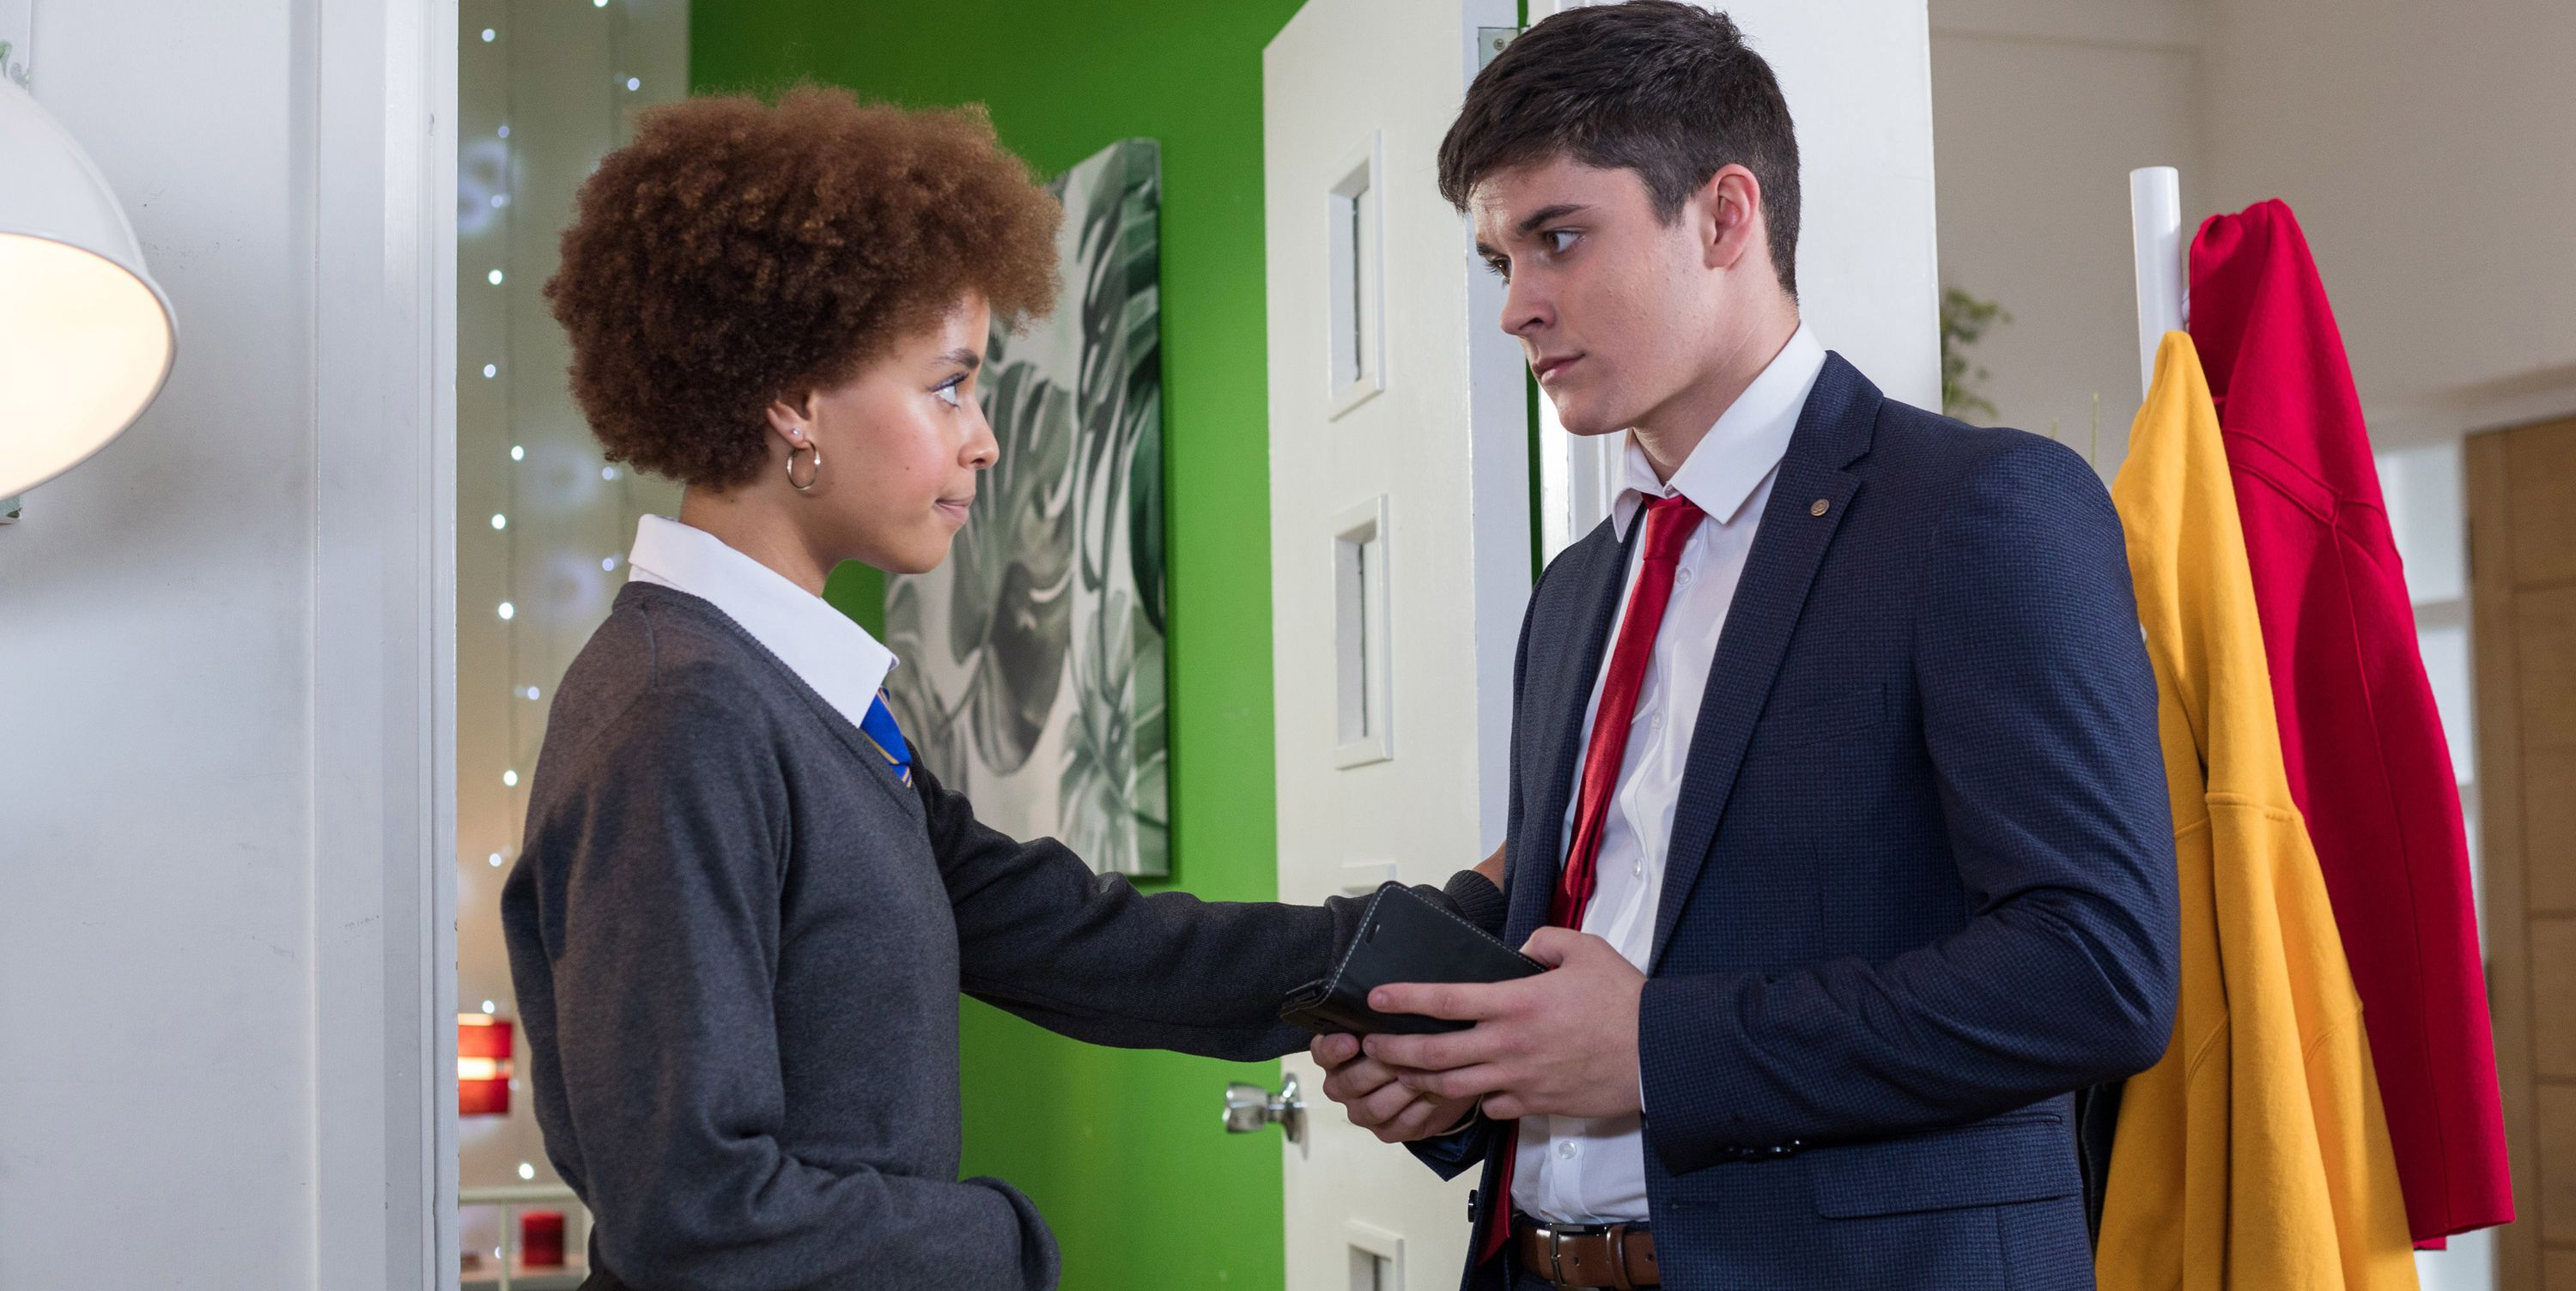 Chemistry between Ollie Morgan and Brooke Hathaway in Hollyoaks